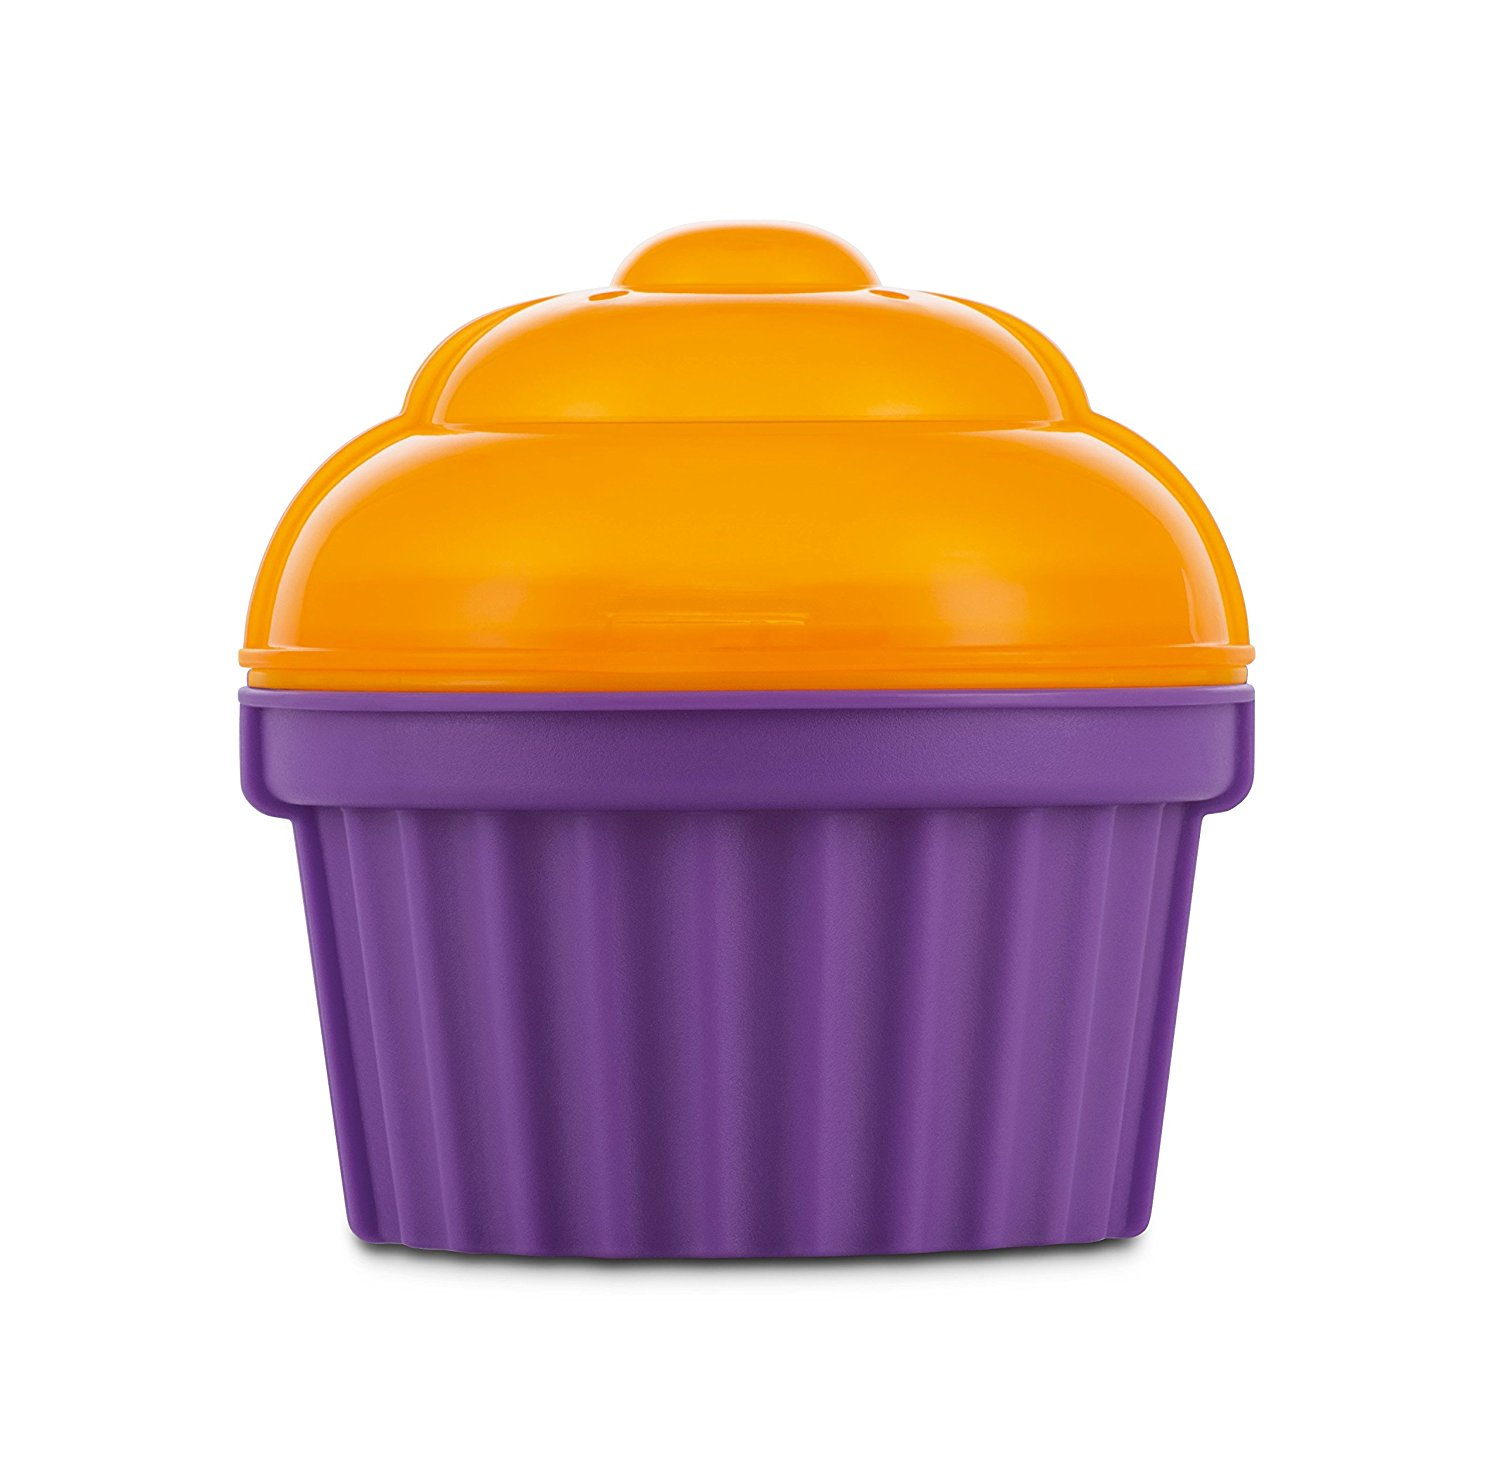 Single Serve Cuppa Cake Maker Purple Baking A Cake With The Zap Chef Cuppa Cake Microwave Cake Maker Is Super Easy And Safe By Zap Chef Walmart Com Walmart Com